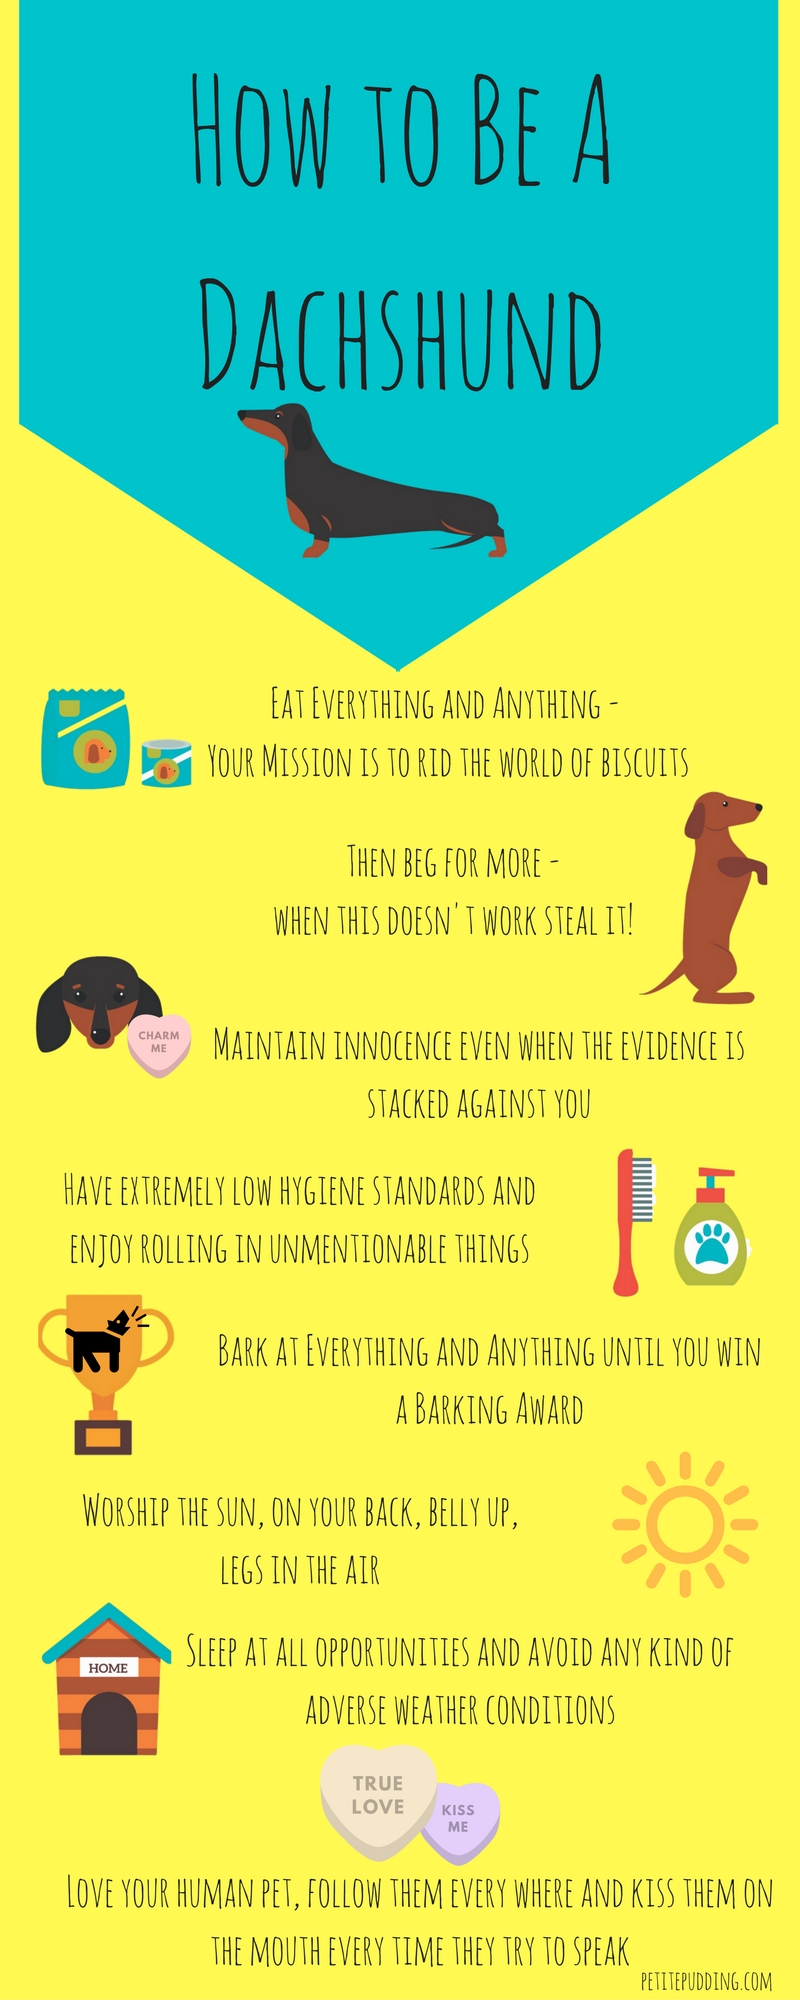 http://mypandacantdance.co.uk/how-to-be-a-dachshund-infographic